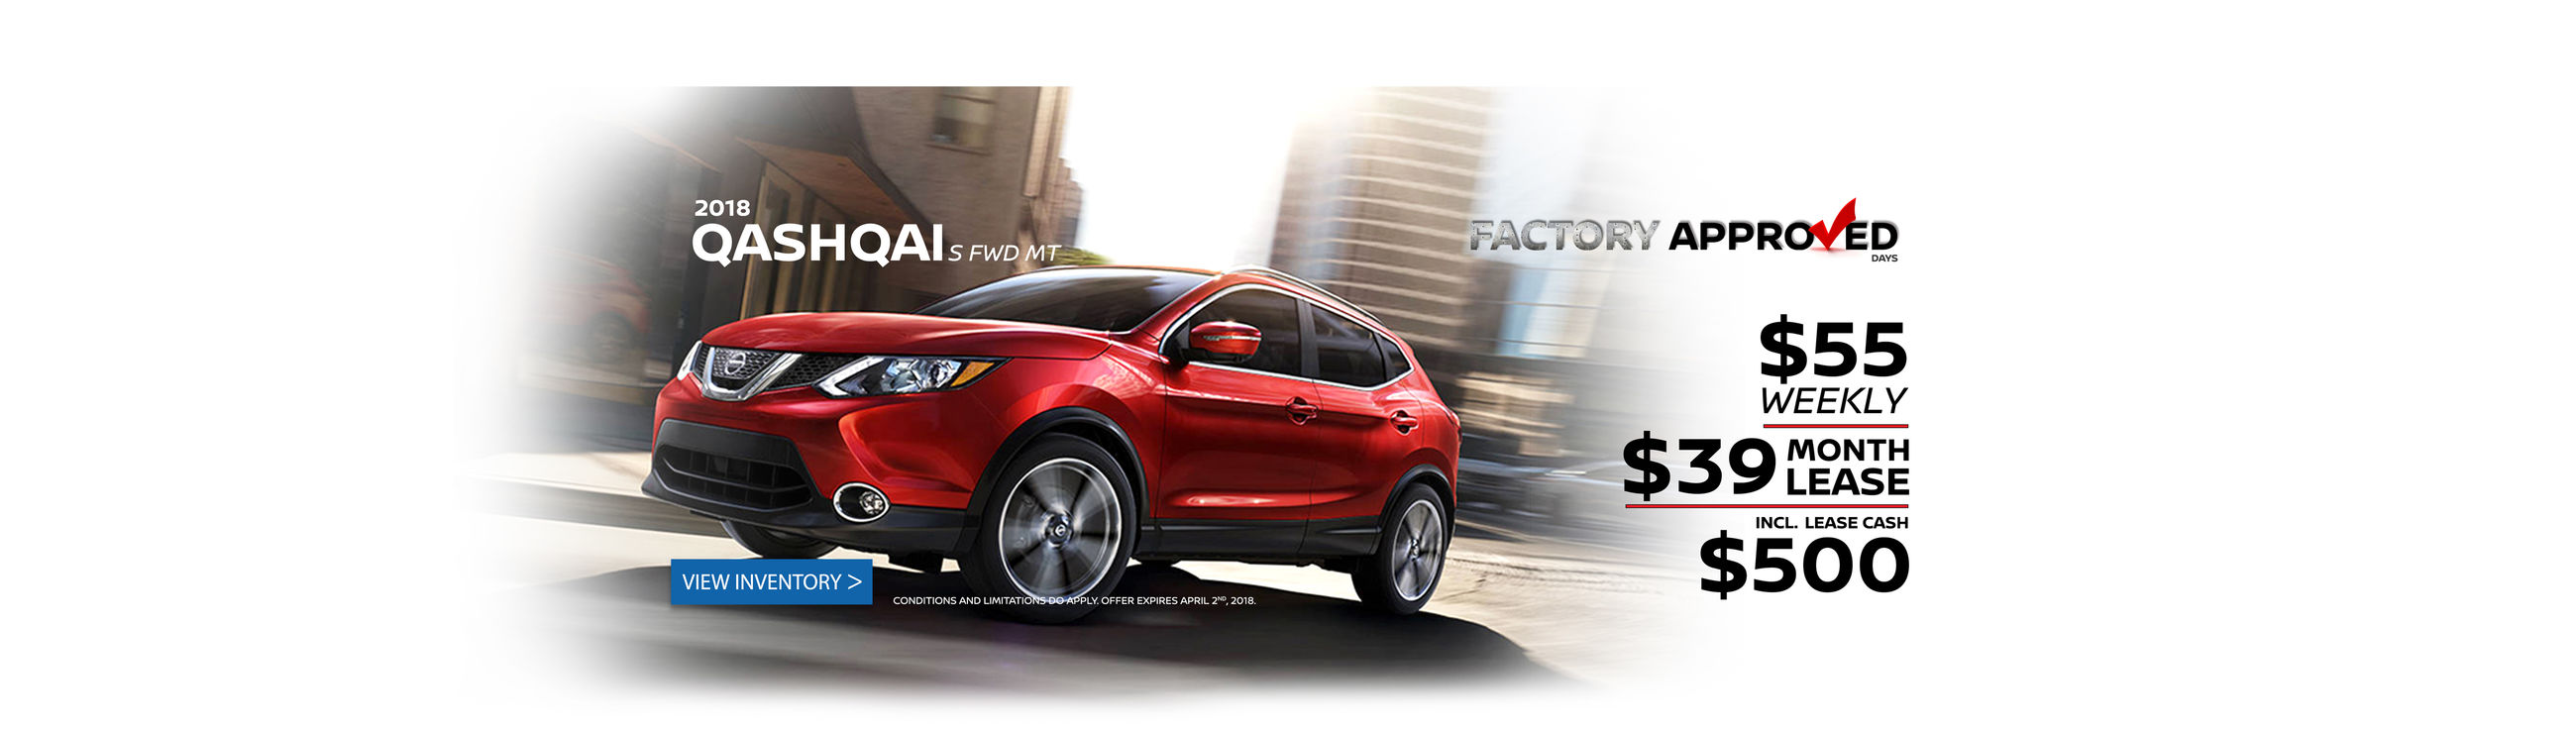 Qashqai - Factory Approved - Web Banner